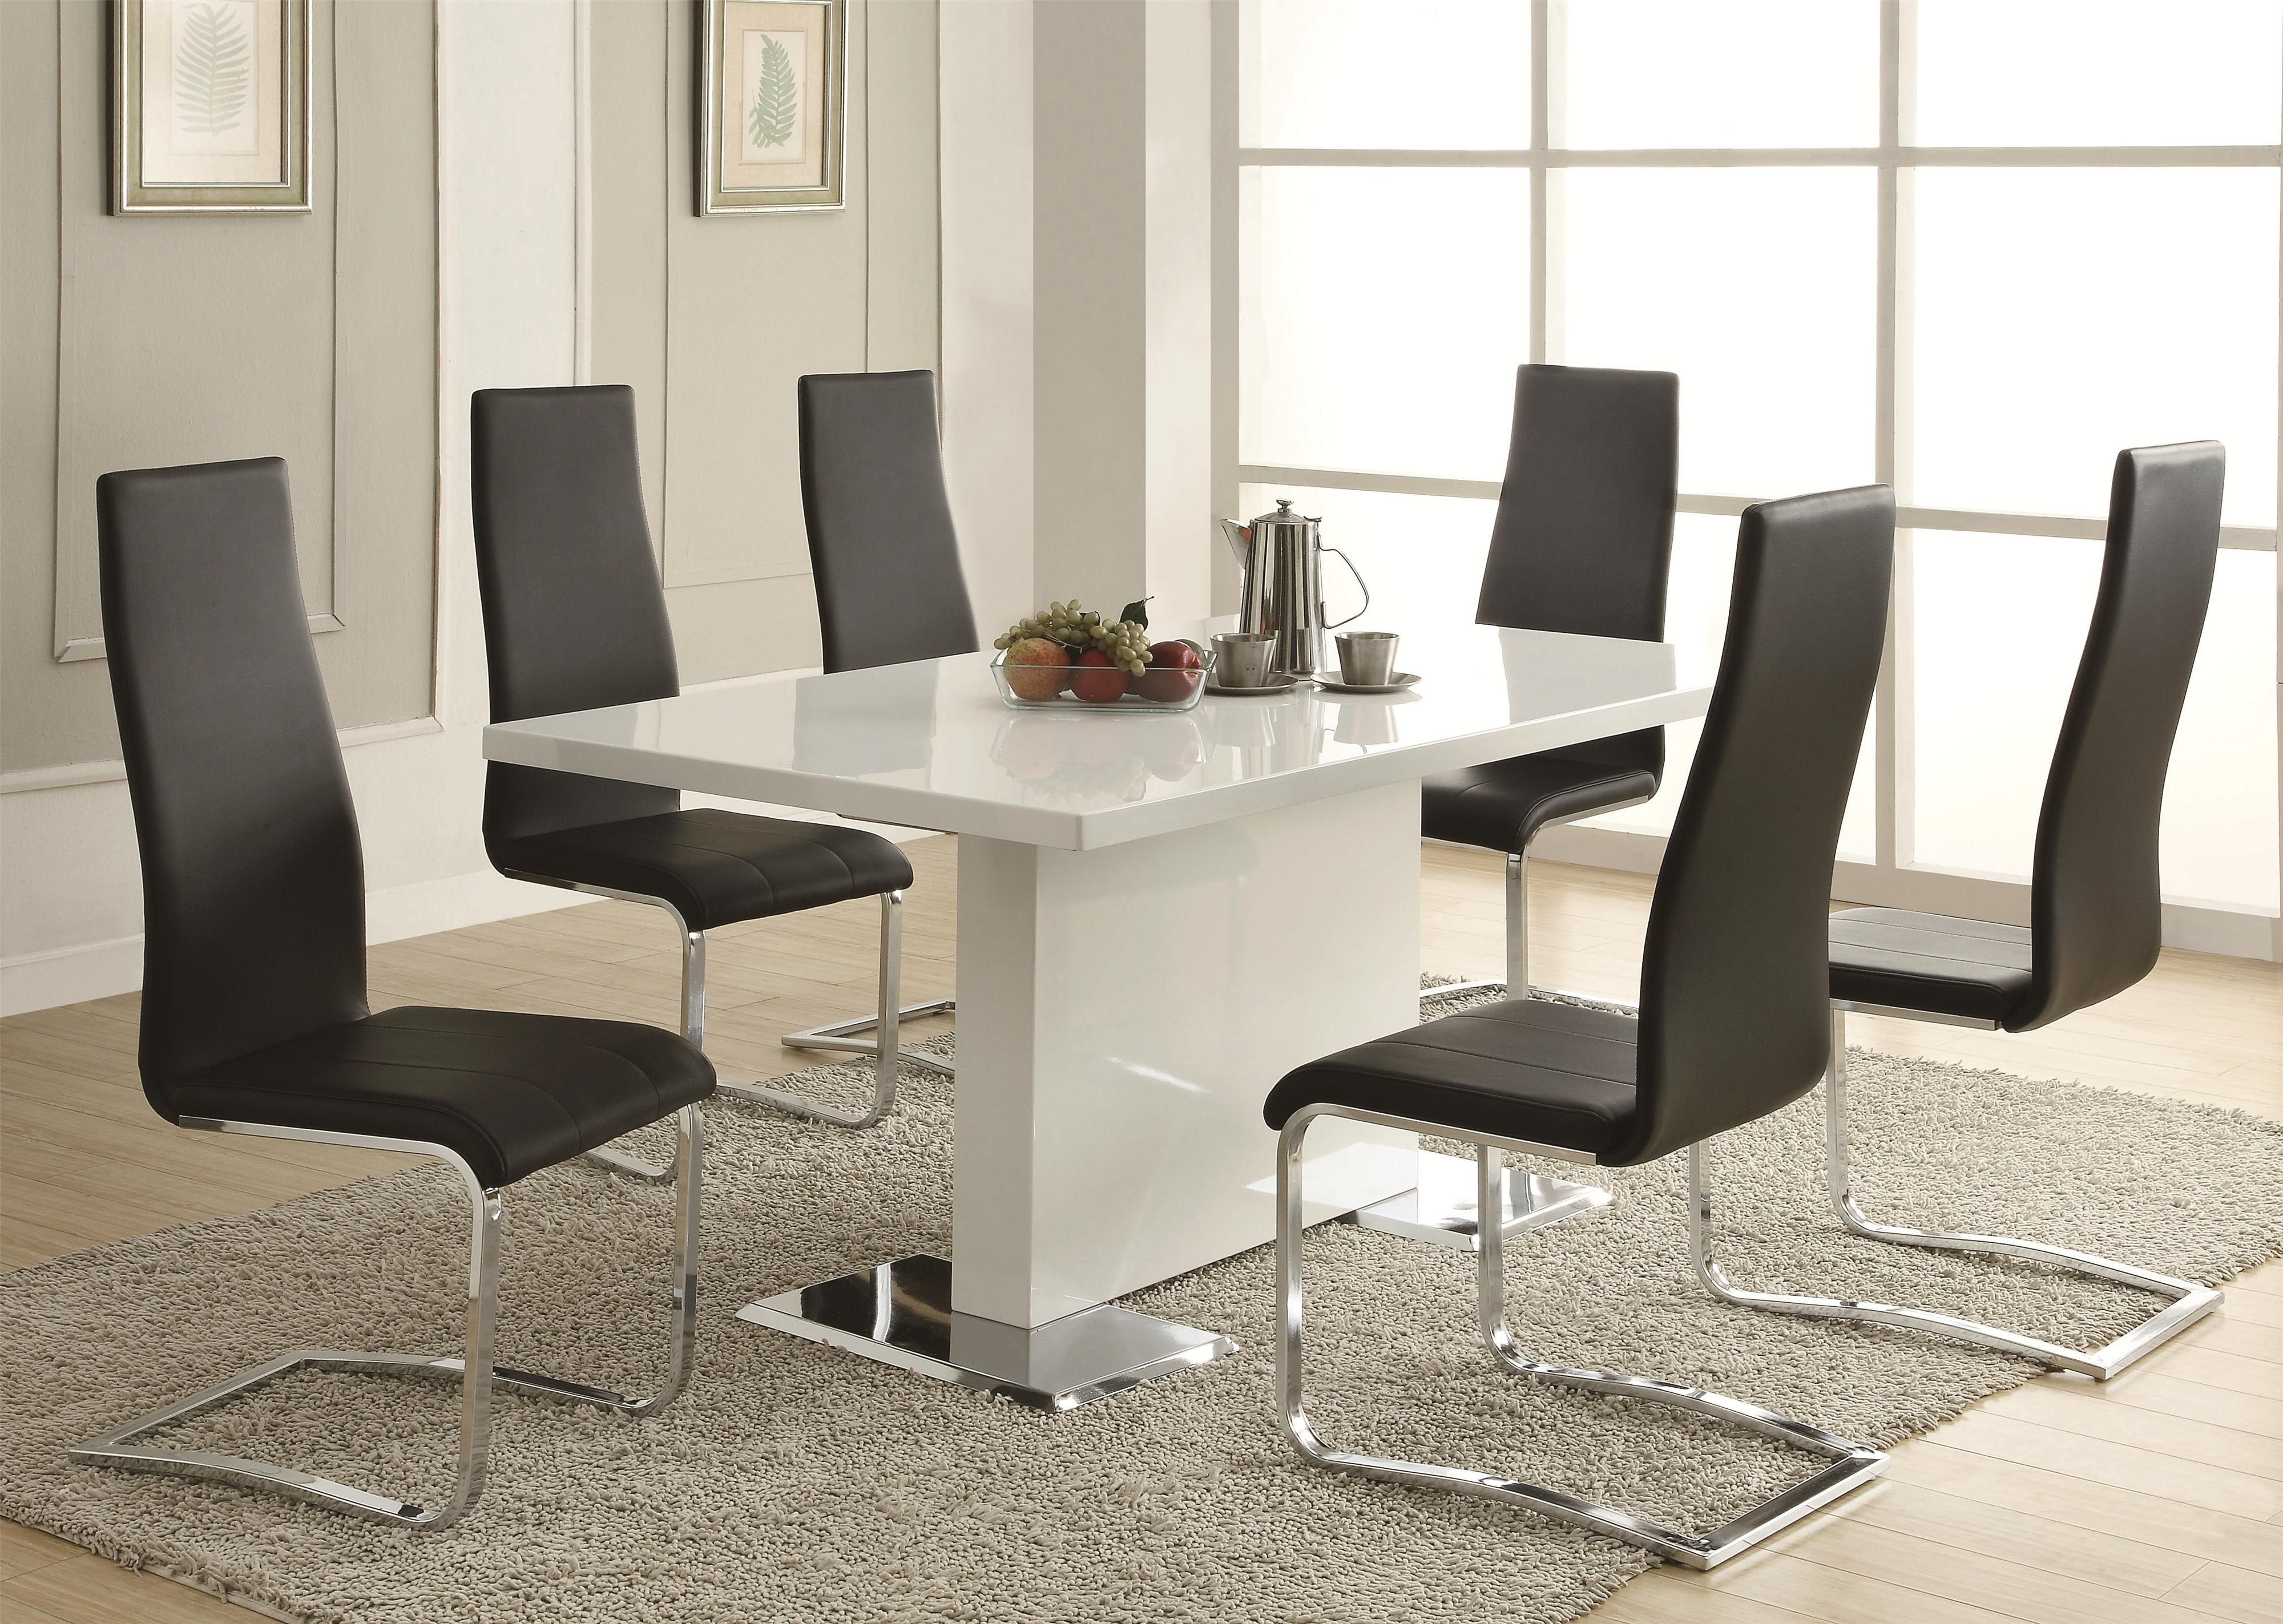 Modern Dining Table, Modern Dining Room Table And Chairs Set